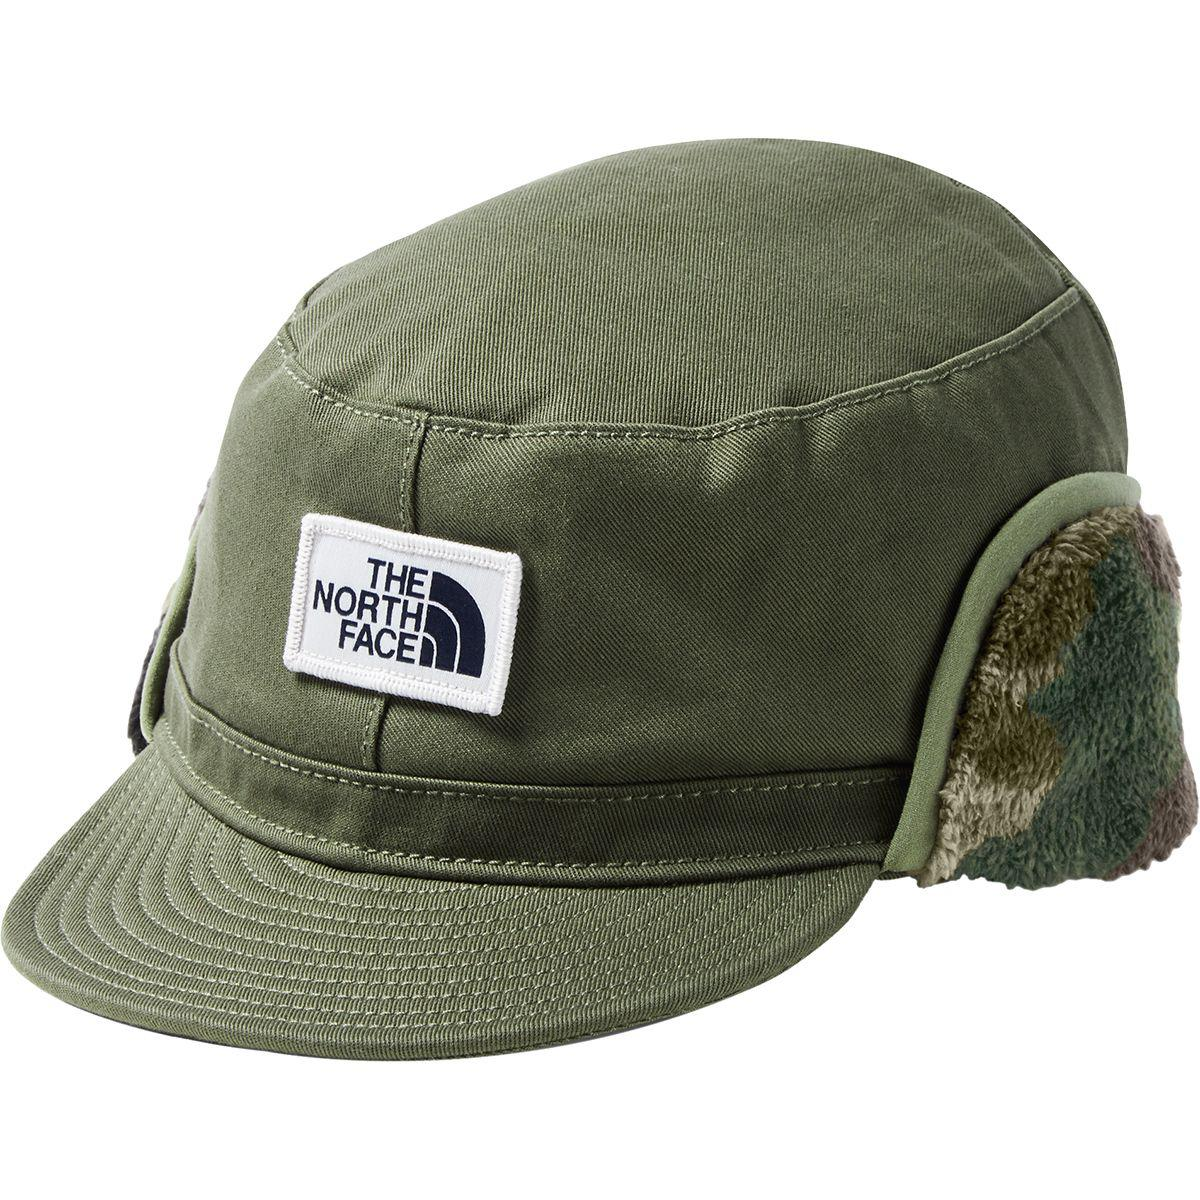 Lyst - The North Face Campshire Earflap Cap in Green for Men - Save 30% a2e68574032b